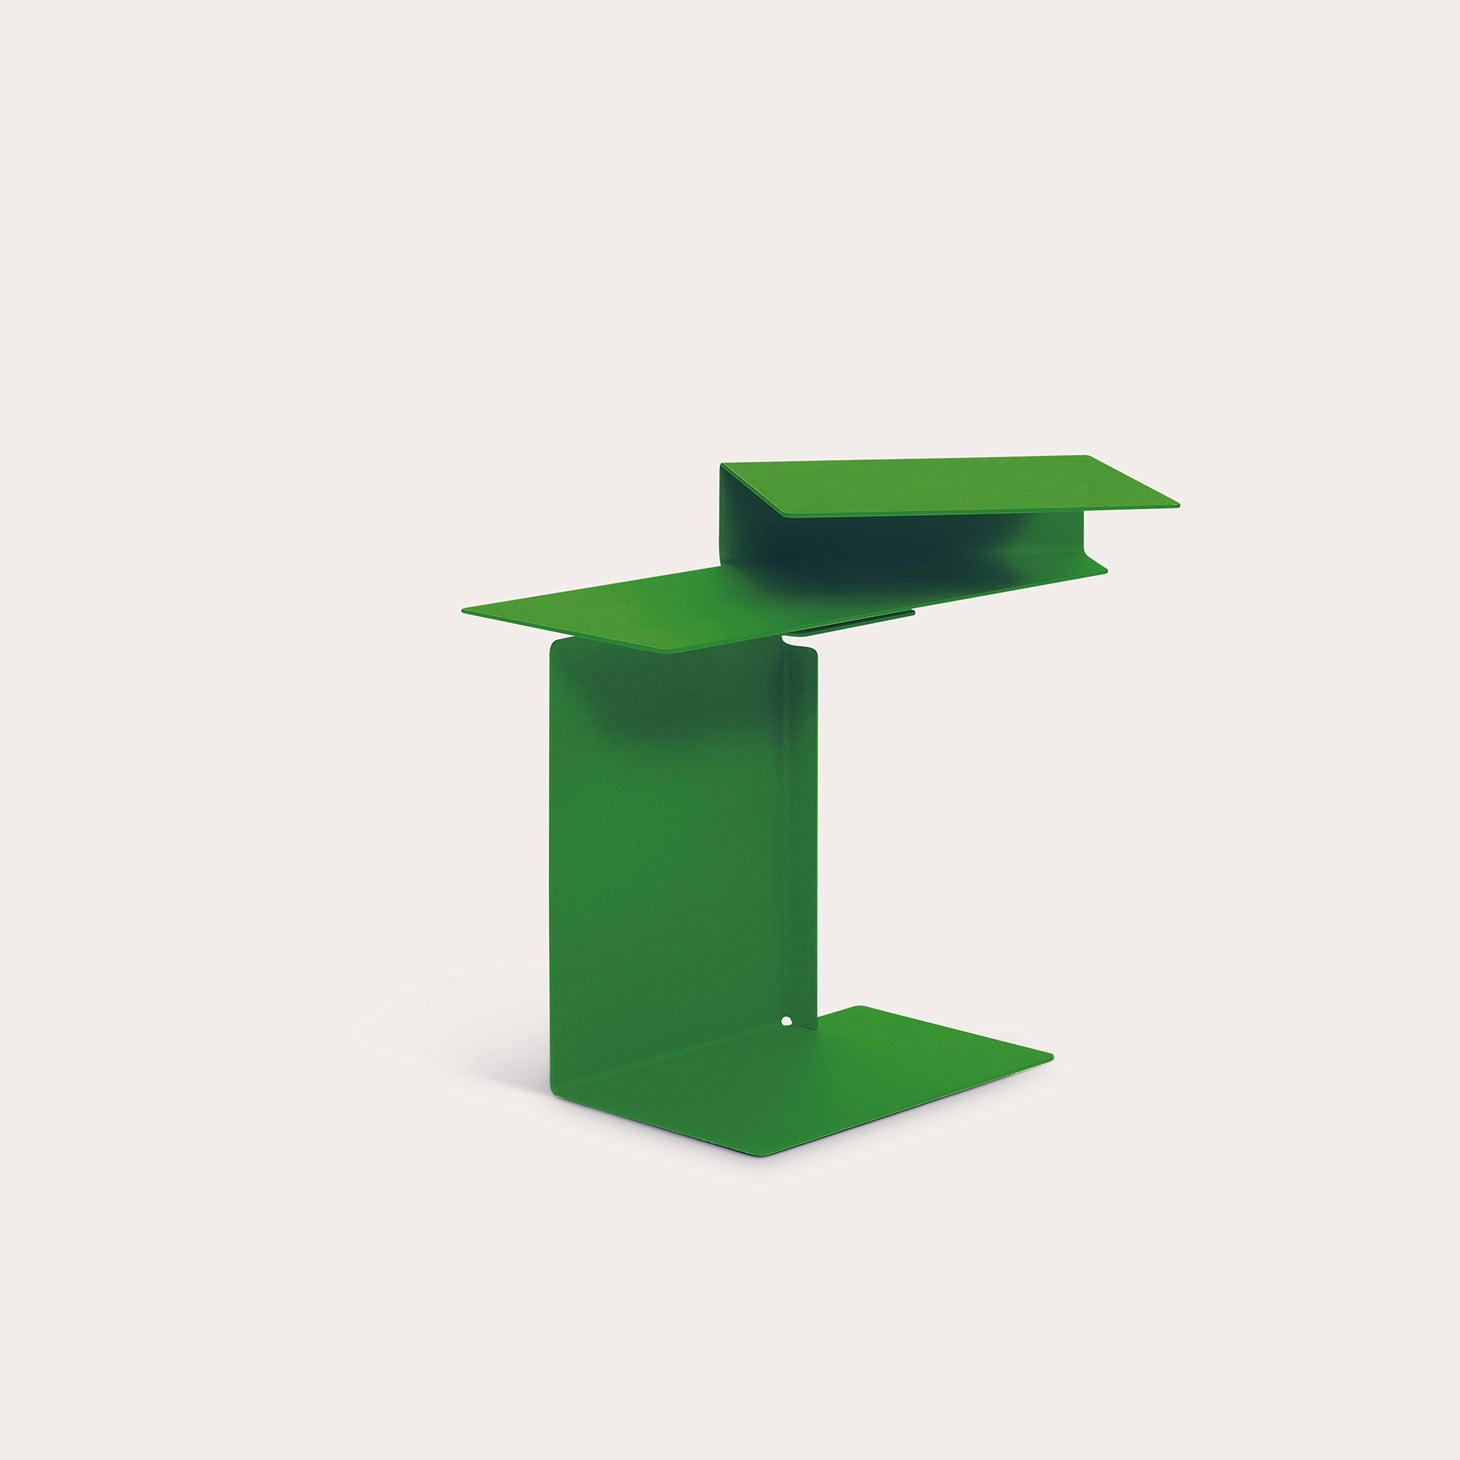 Diana E Tables Konstantin Grcic Designer Furniture Sku: 001-230-10095